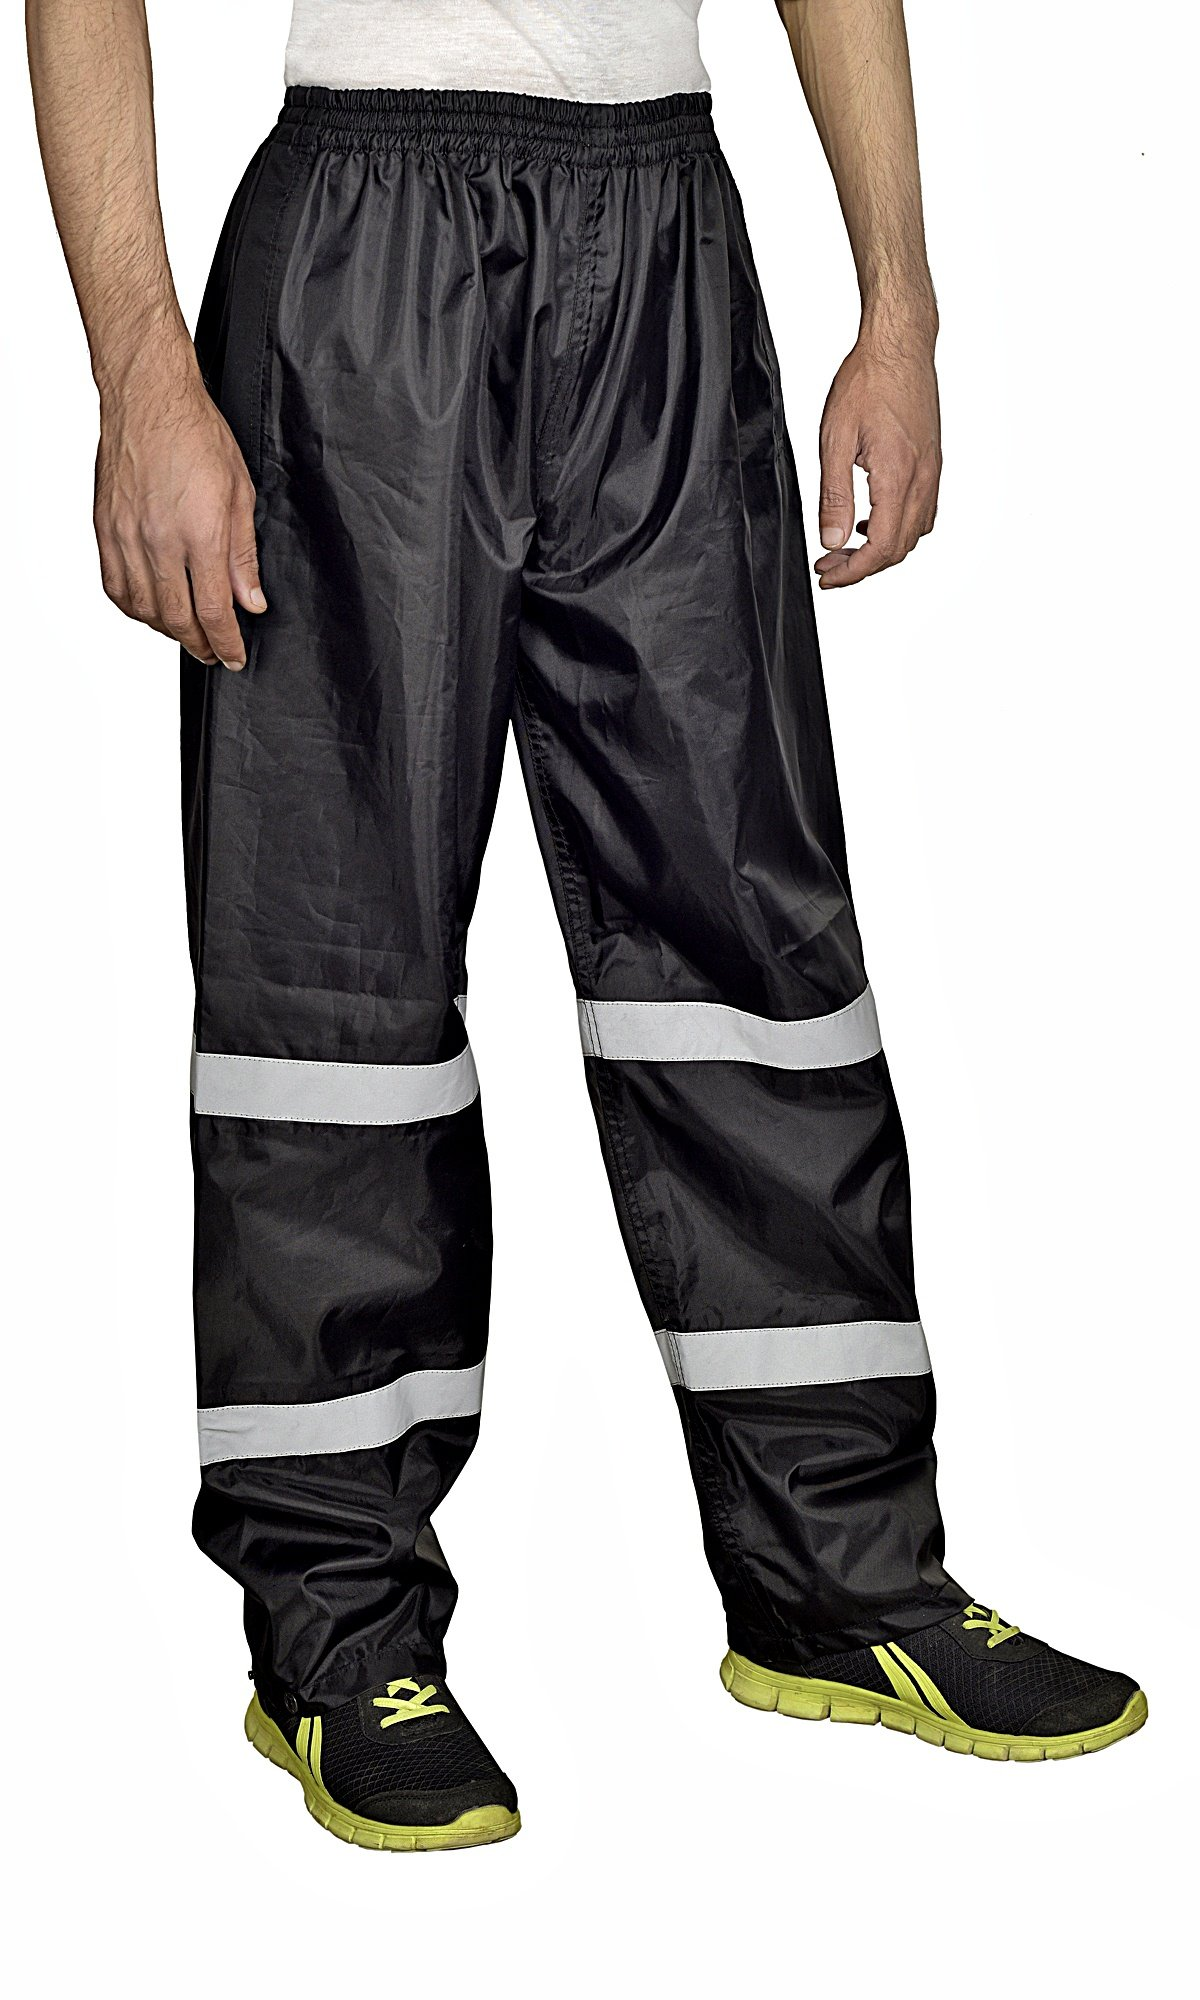 Xtreemgear Mens Rain Pants 100% Waterproof Reflective Stripes for Night time Visibility (XXL)